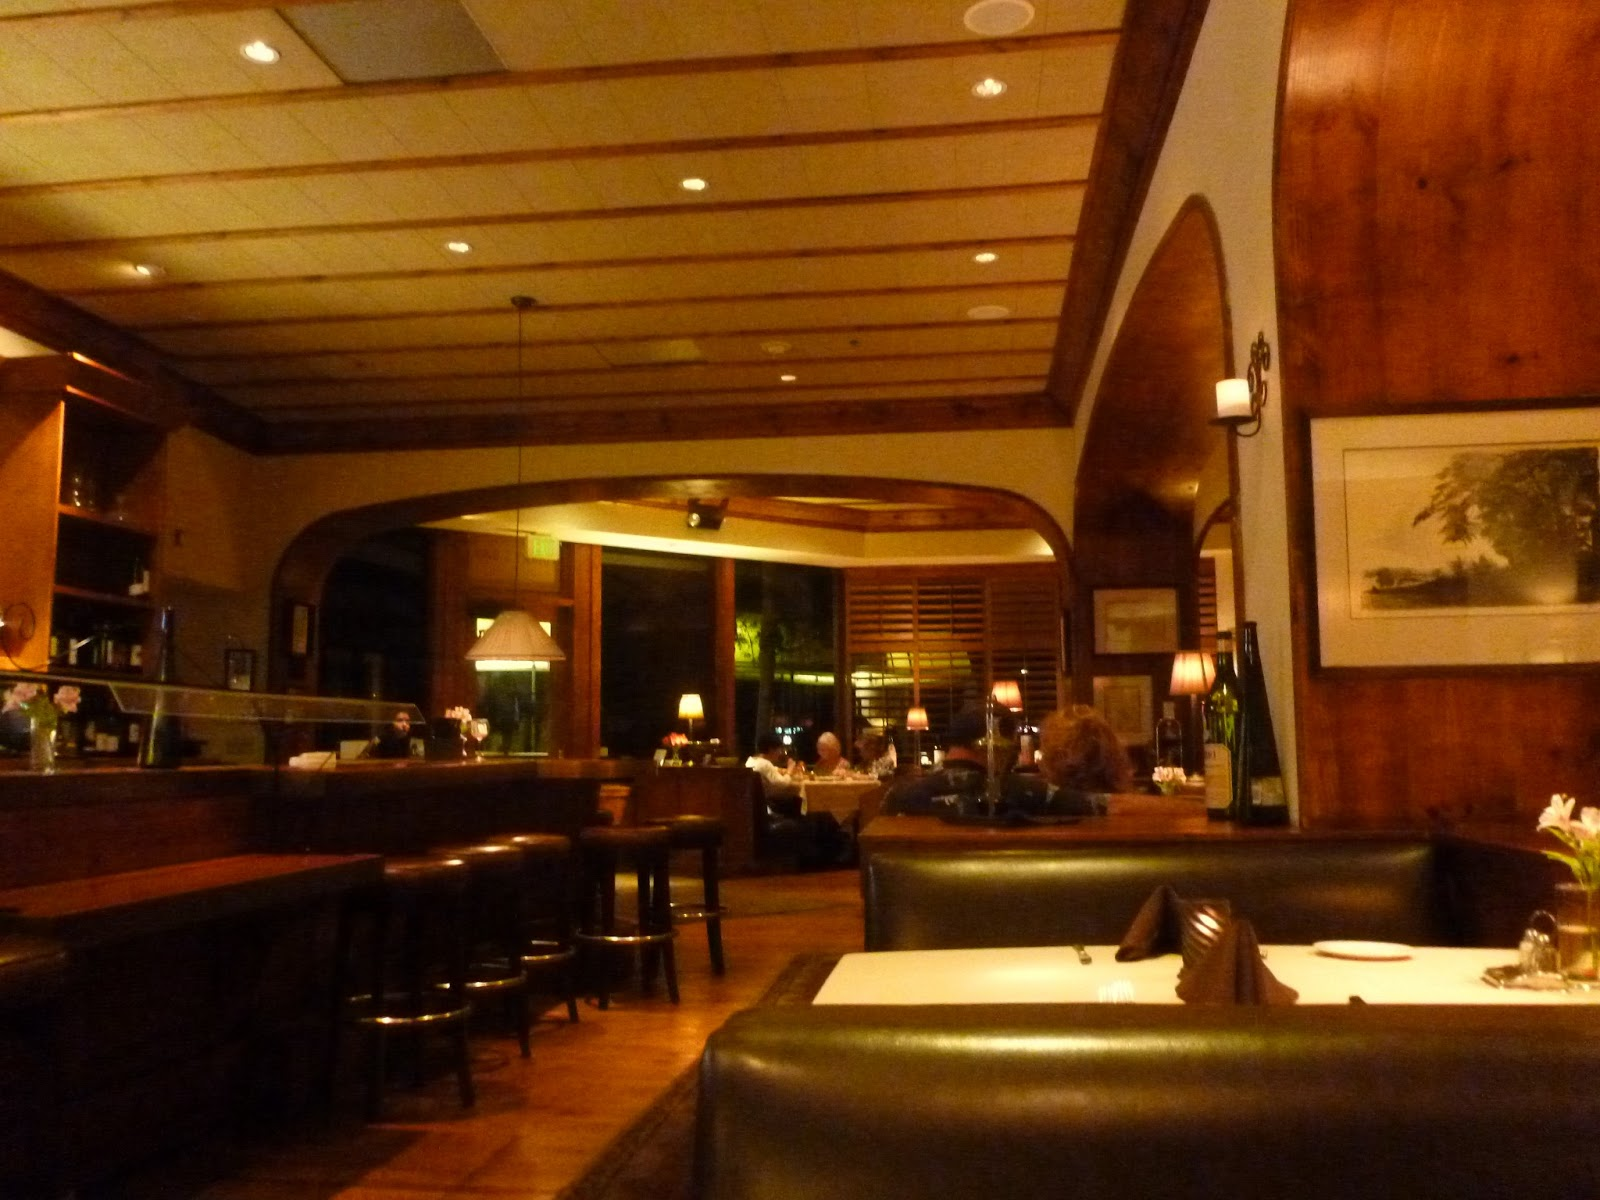 Academic capital the hidden gem harry s bar and american grill - American grill restaurant ...